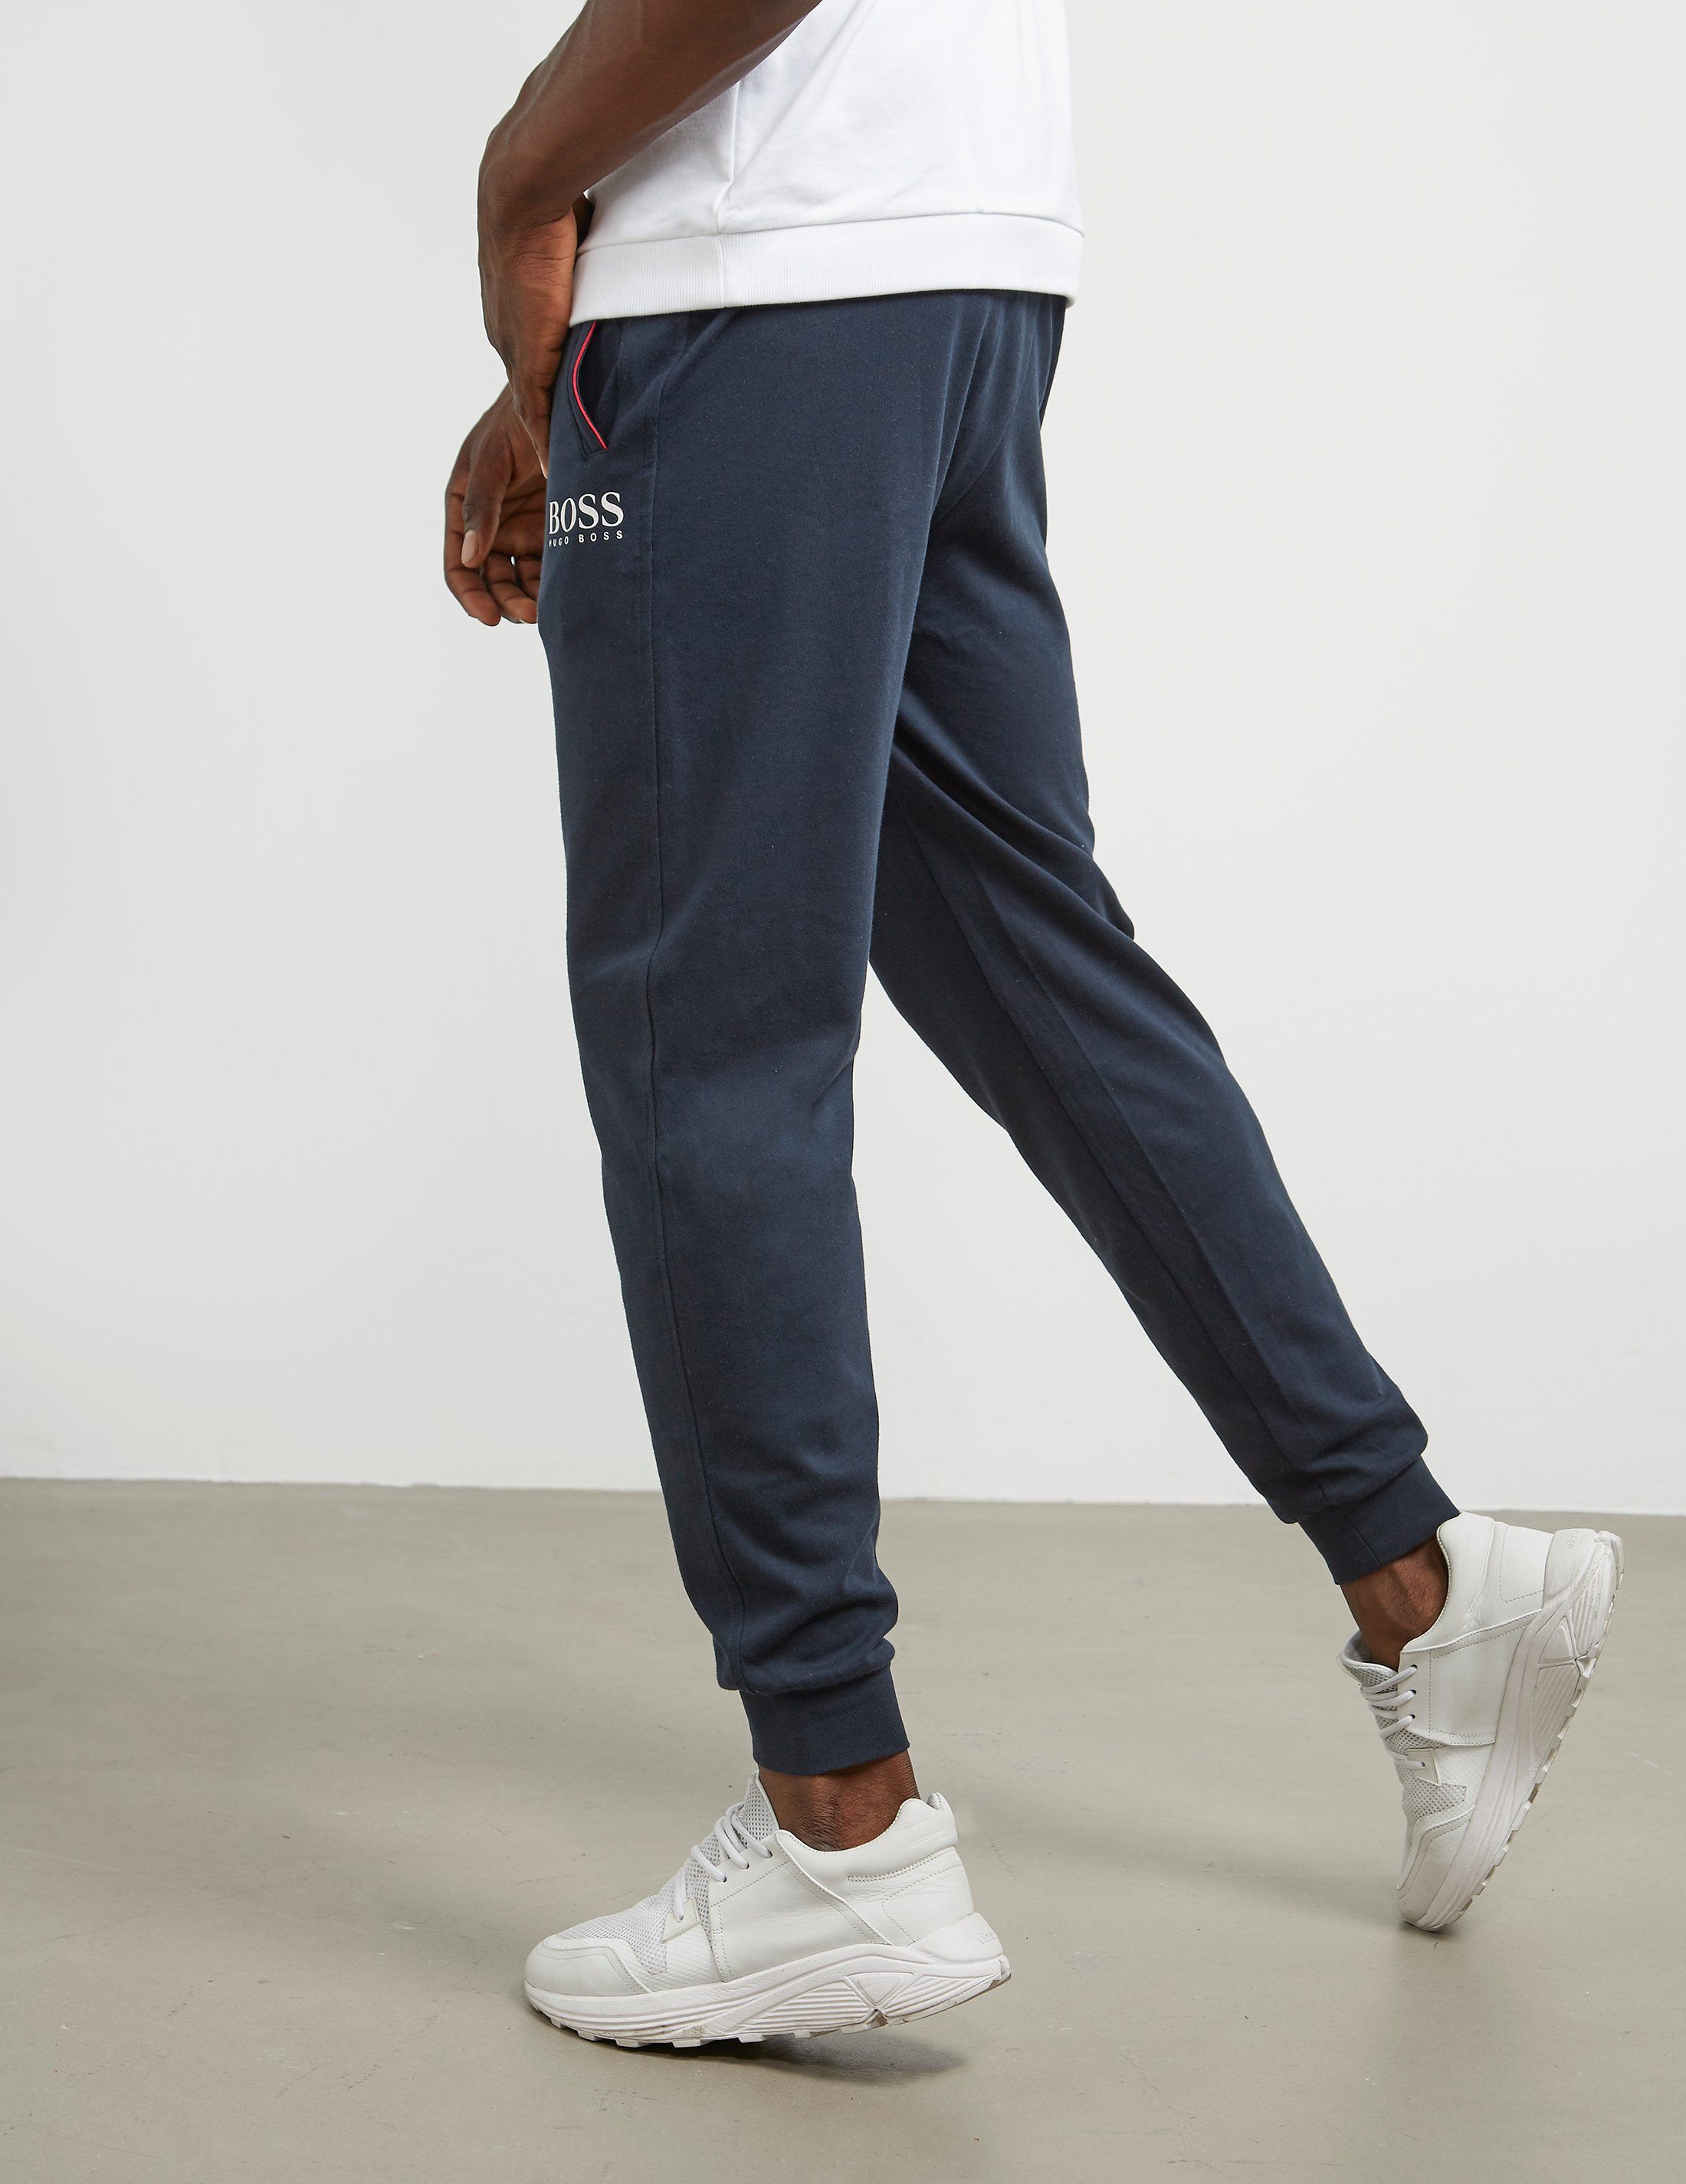 BOSS Authentic Cuffed Fleece Pants